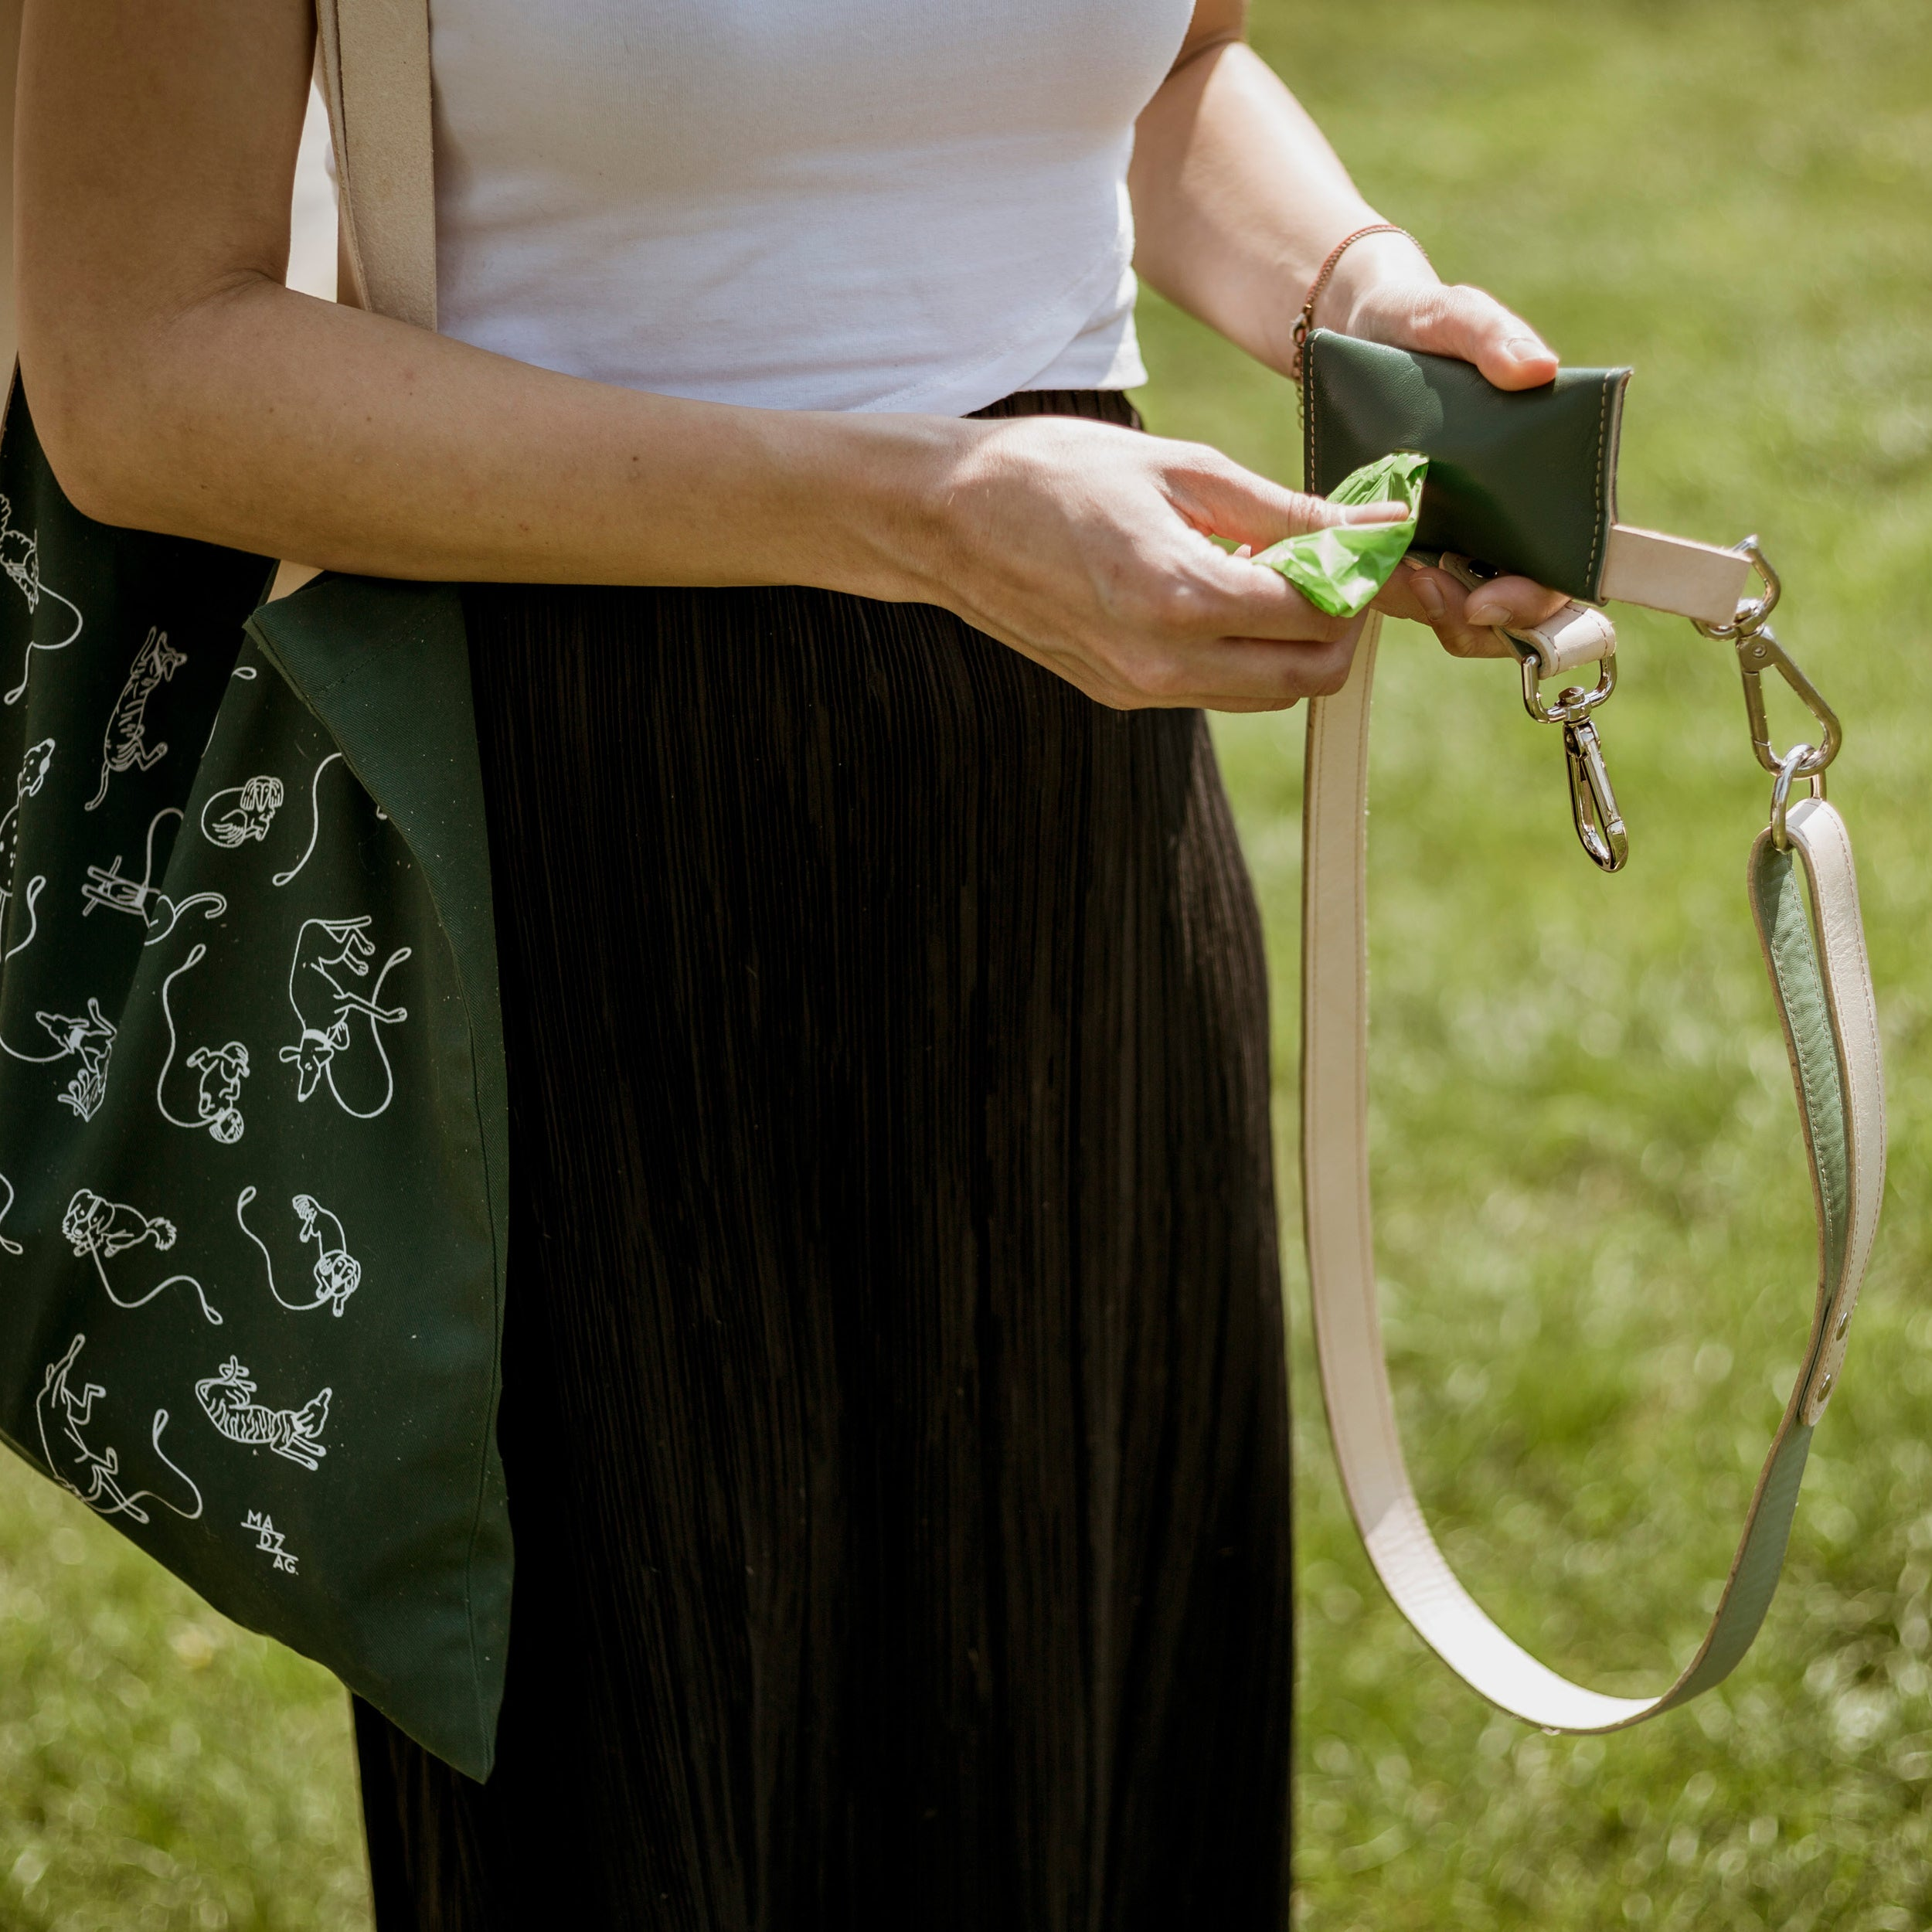 Simple Leash- for taller dogs and those who prefer to keep their dogs closer